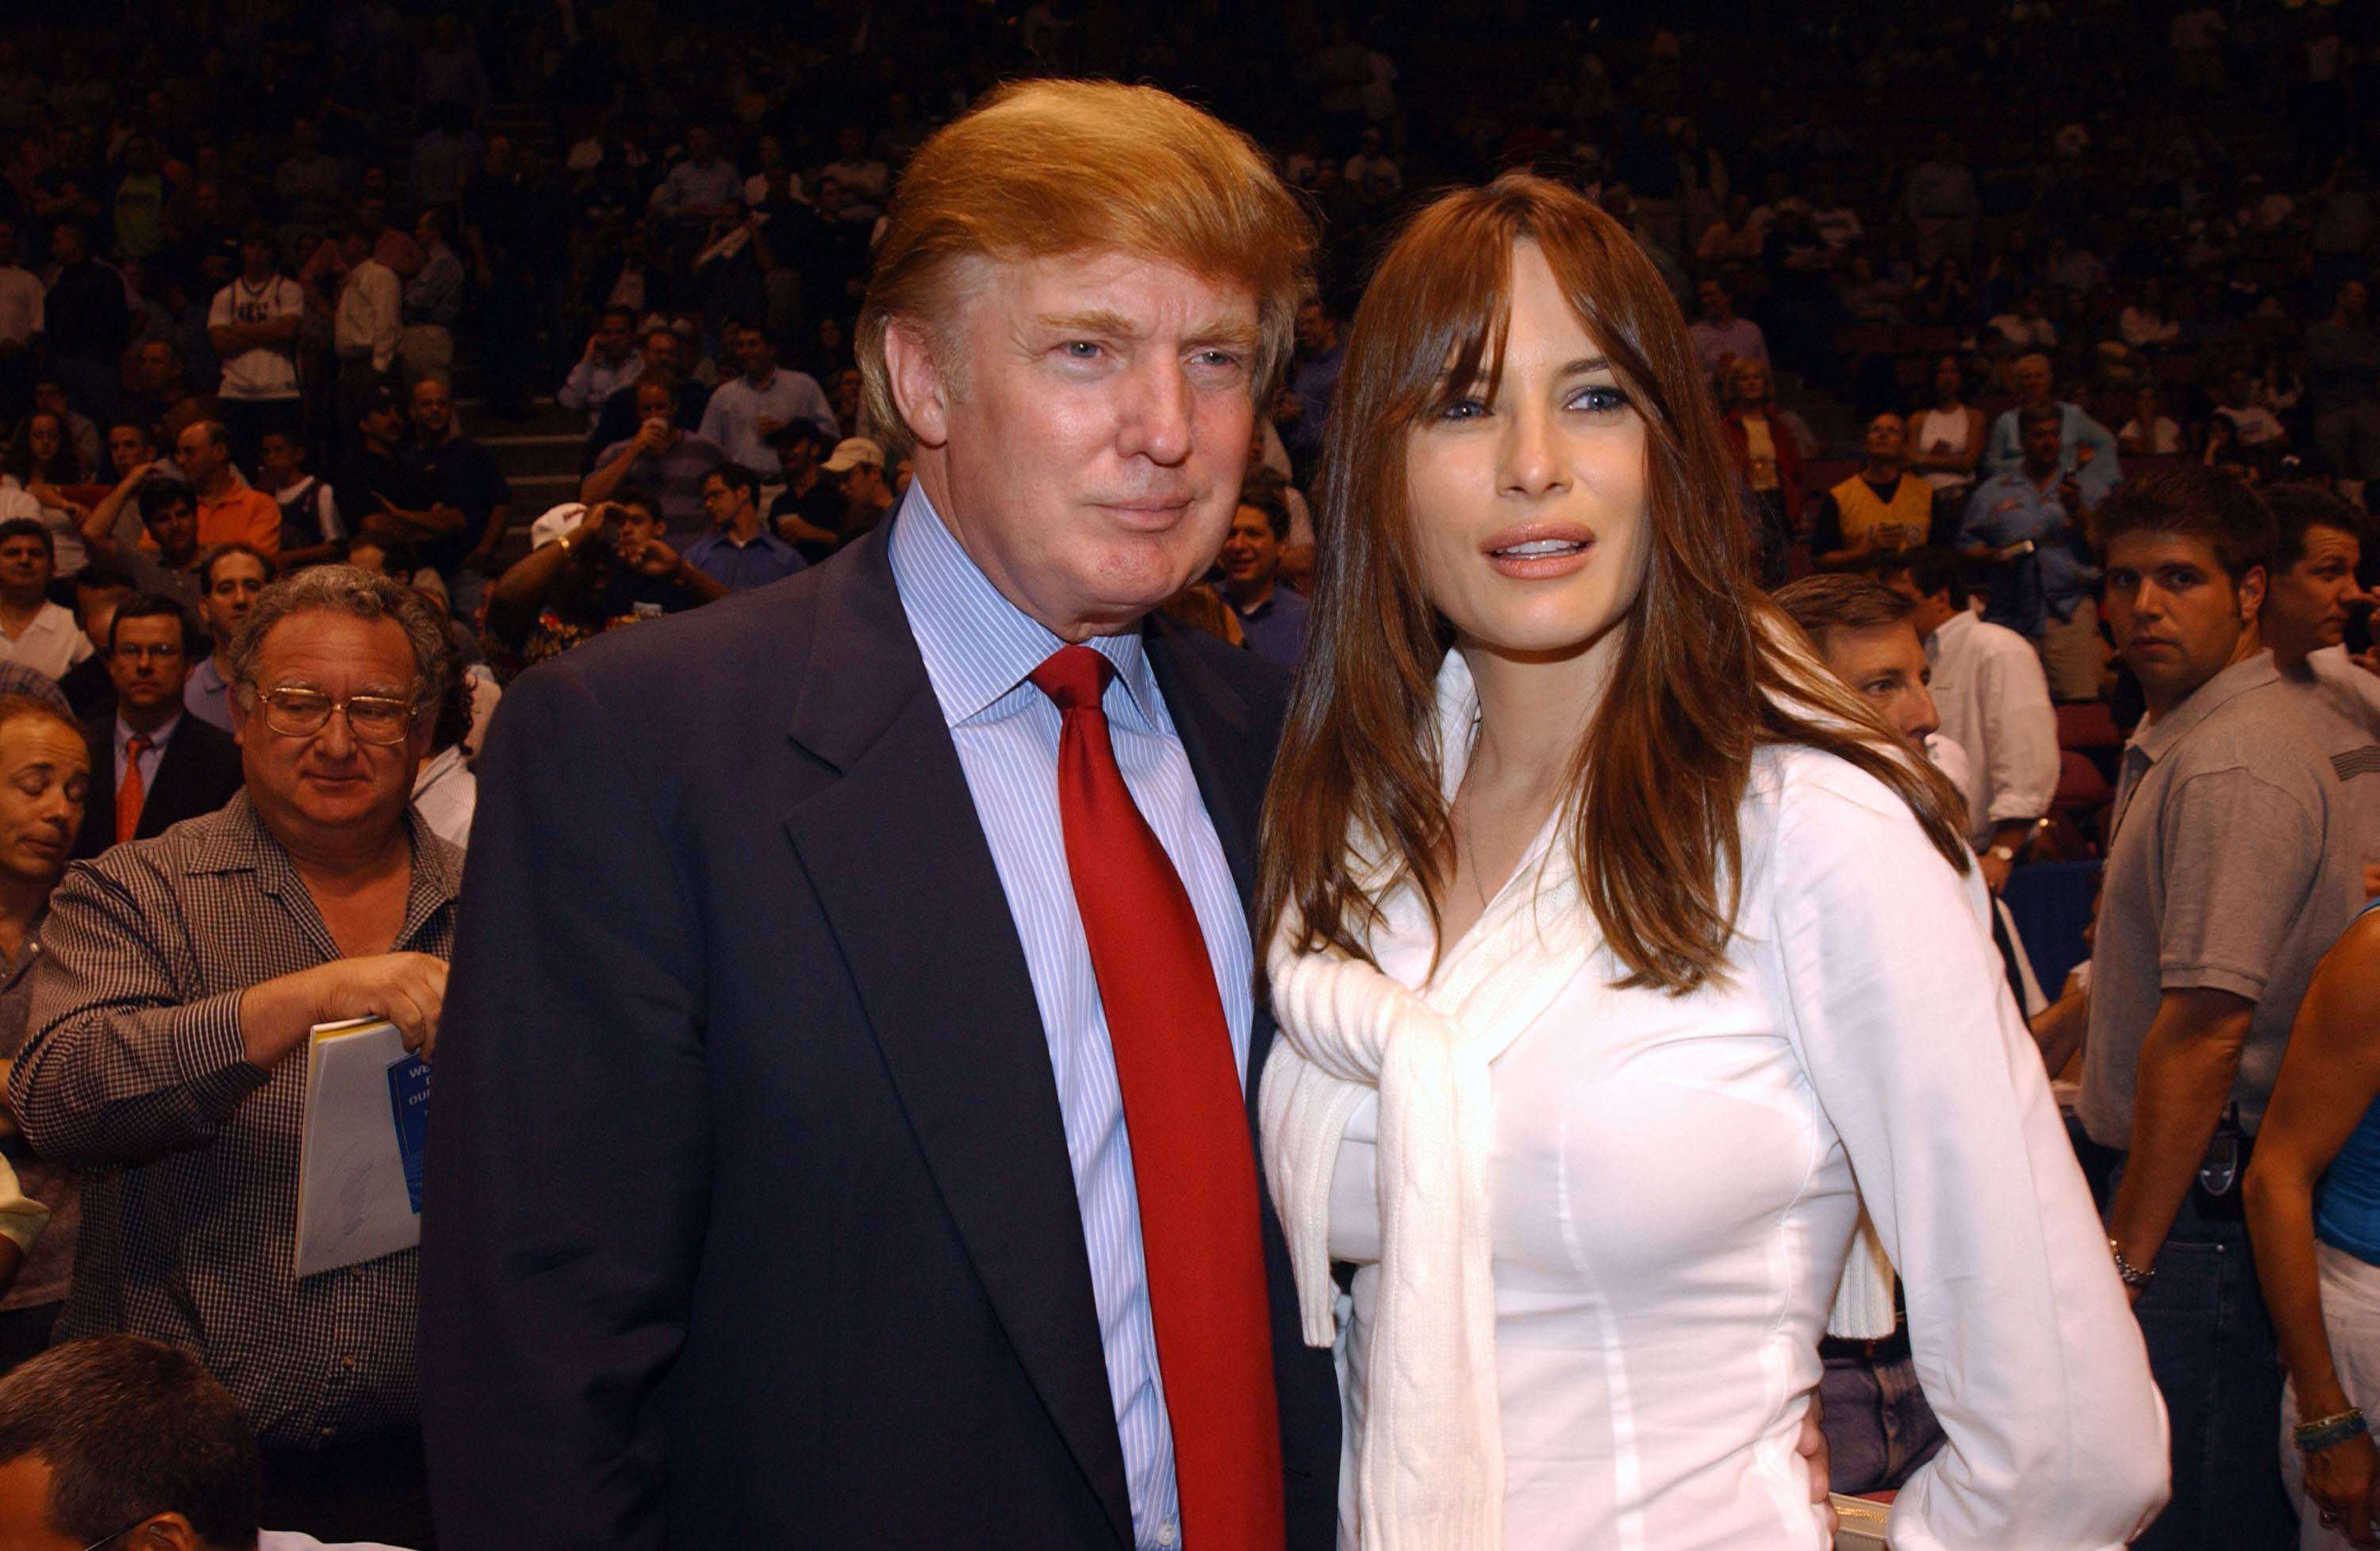 Donald Trump and Melania Knauss 2002 NBA Finals